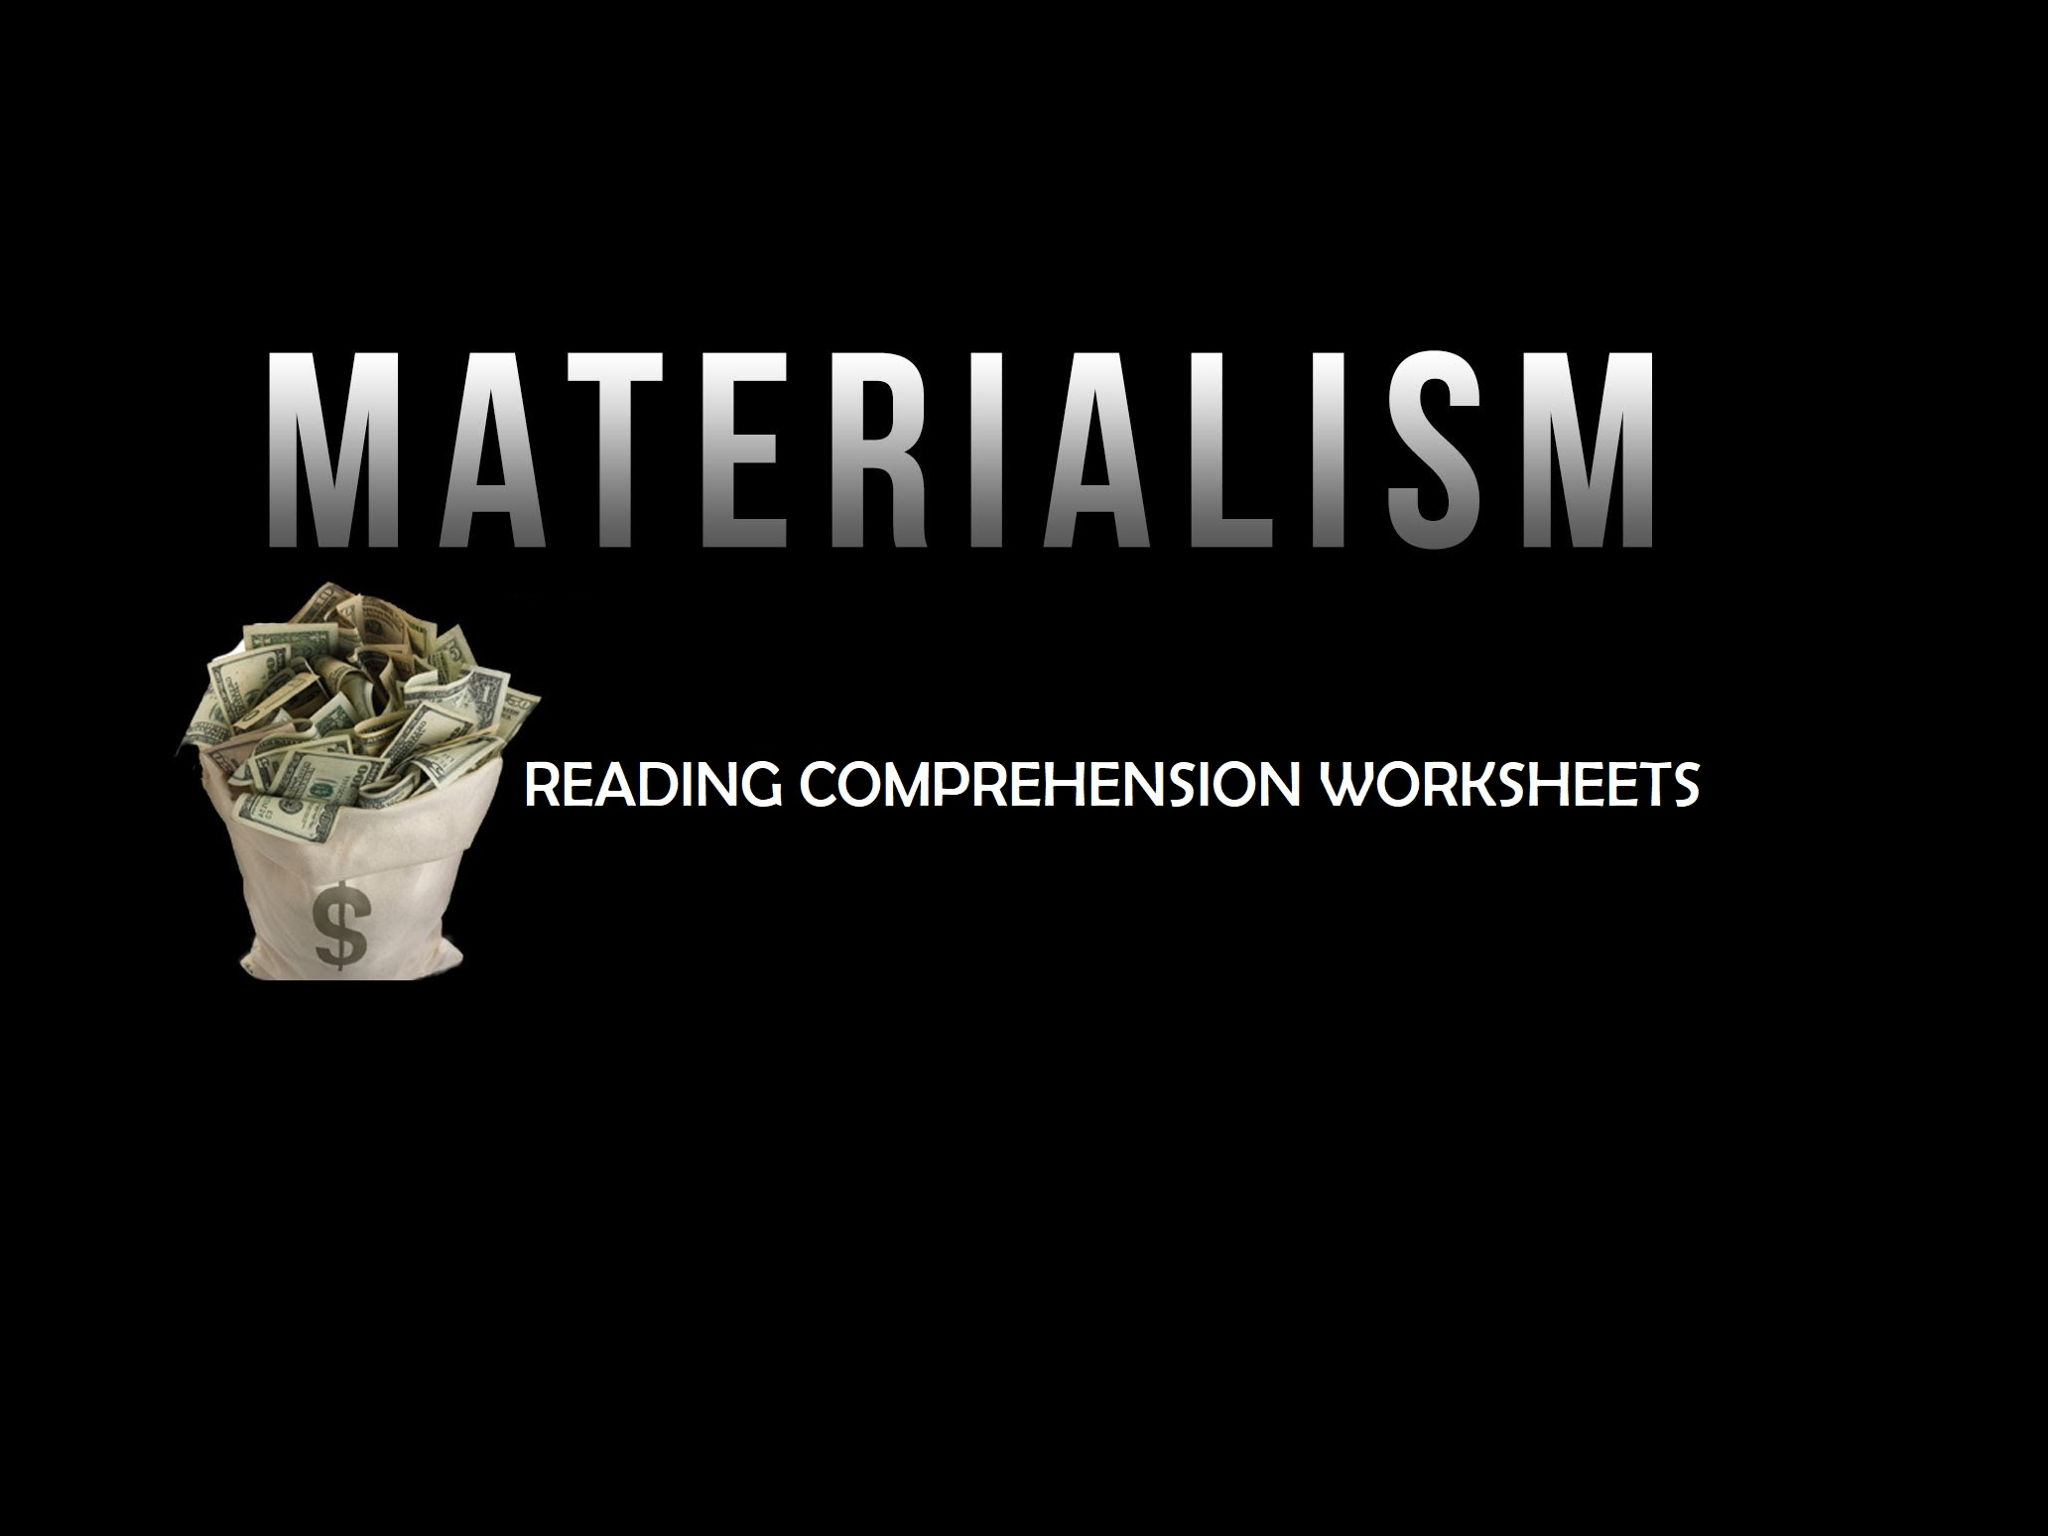 MATERIALISM - Reading Comprehension Worksheets